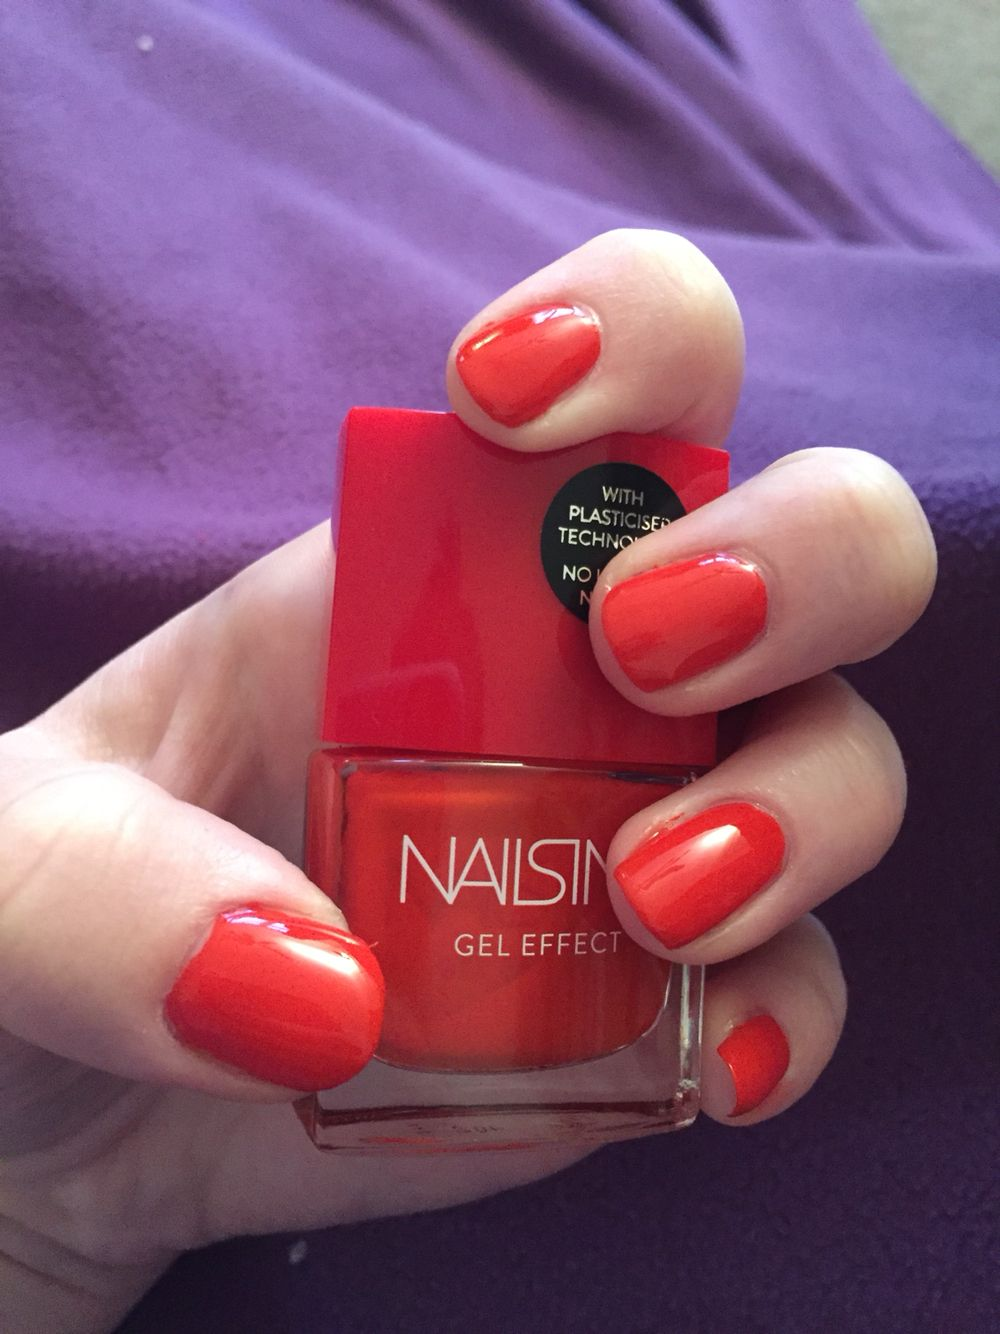 Nails inc gel nail colors and gel nail polish on pinterest - Nails Inc West End Gel Effect Polish